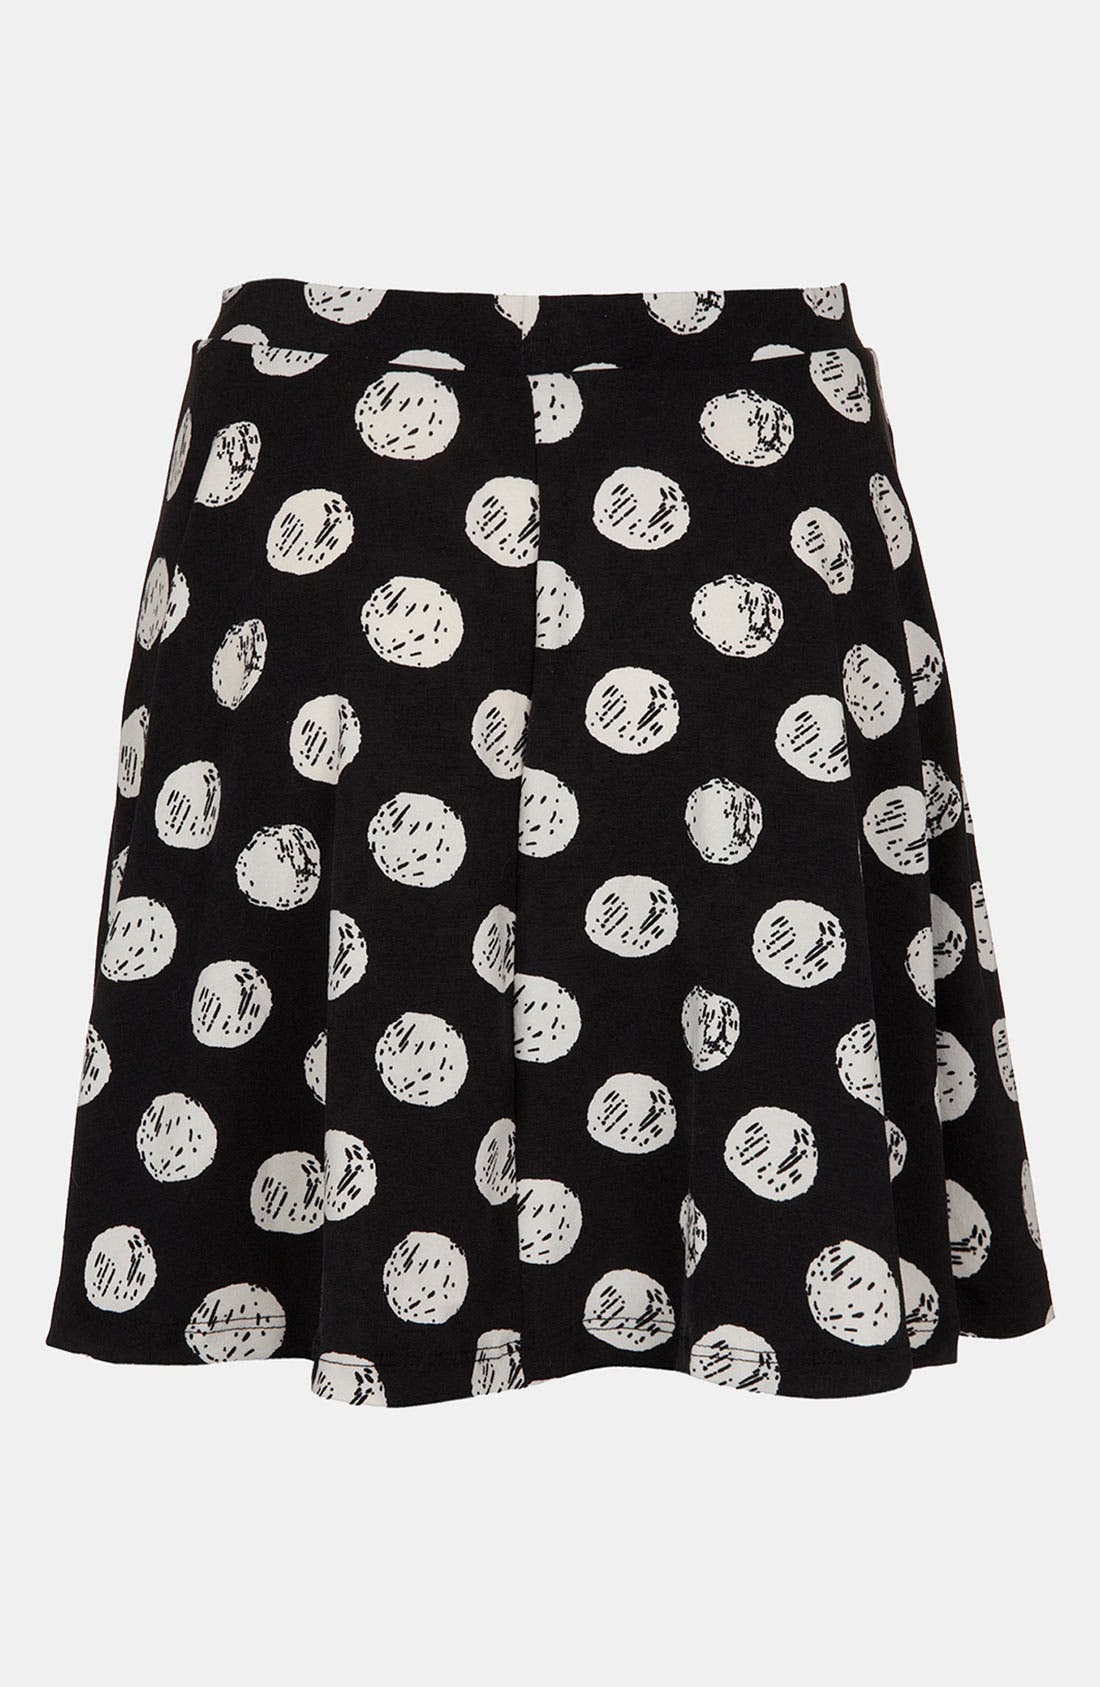 Alternate Image 1 Selected - Topshop Polka Dot Print Skater Skirt (Regular & Petite)